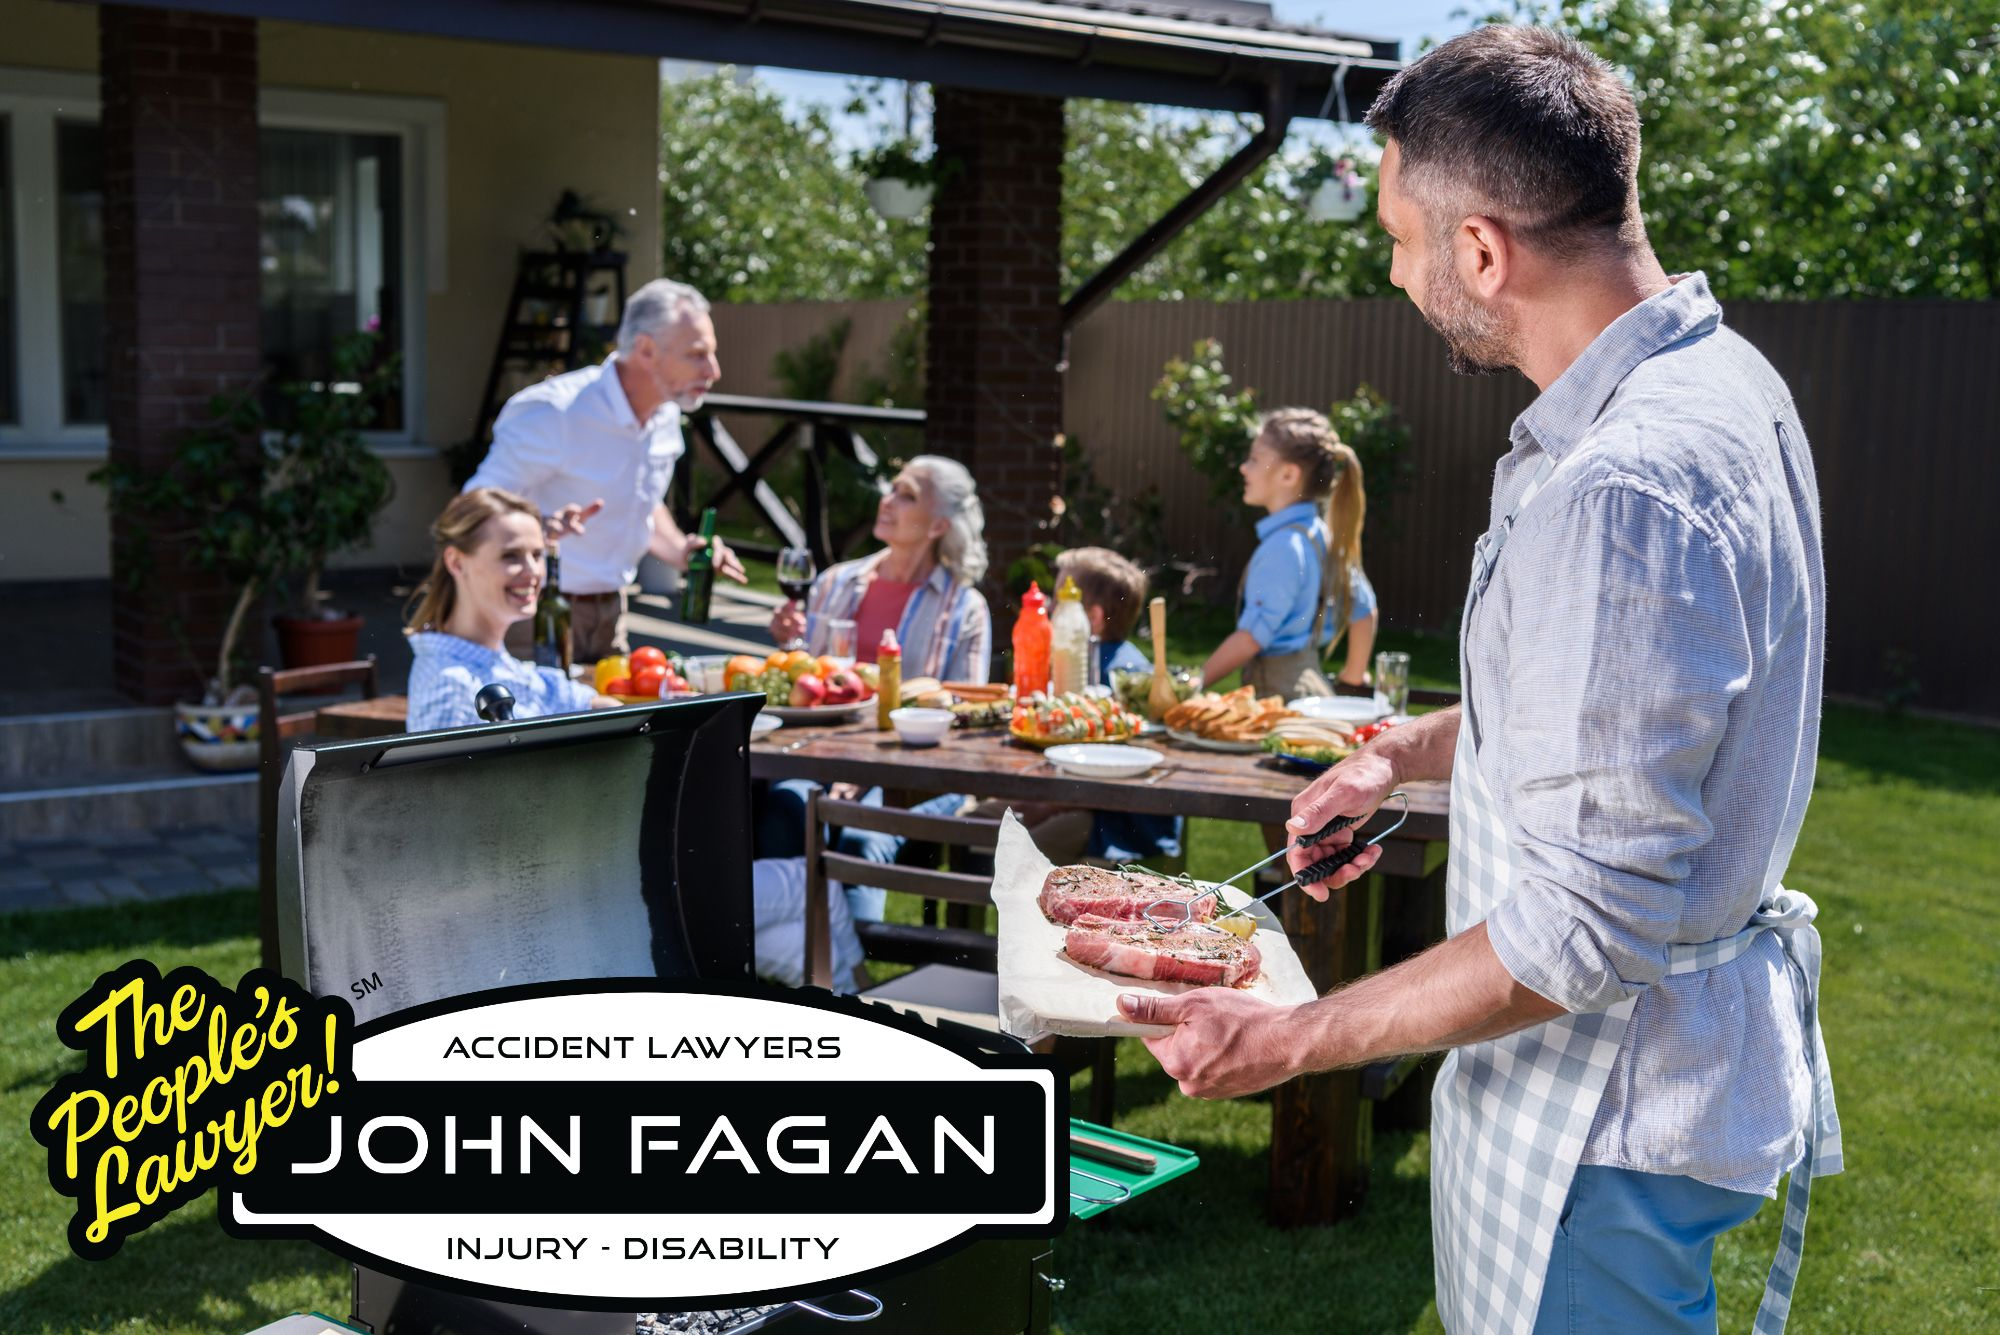 5 Tips for Staying Safe While Enjoying Your Summer Barbecue